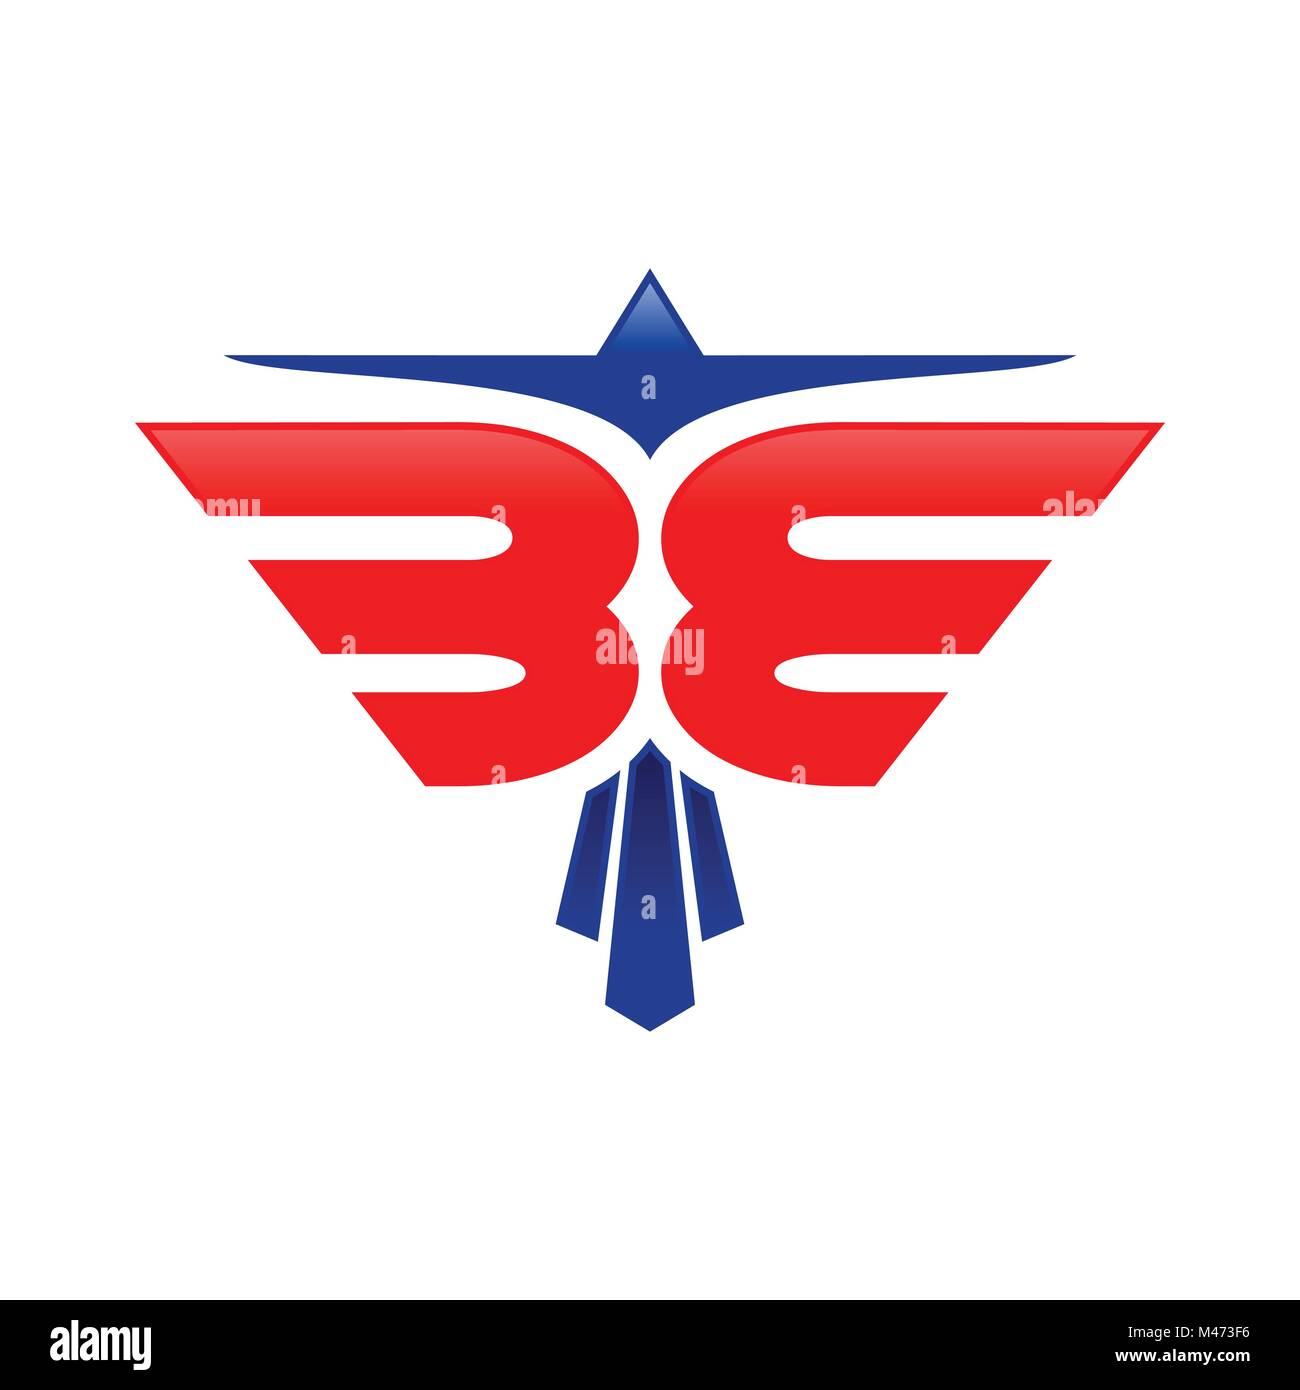 Eagle emblem logo stock photos eagle emblem logo stock images abstract eagle be initials blue red color symbol vector graphic logo design stock image biocorpaavc Gallery